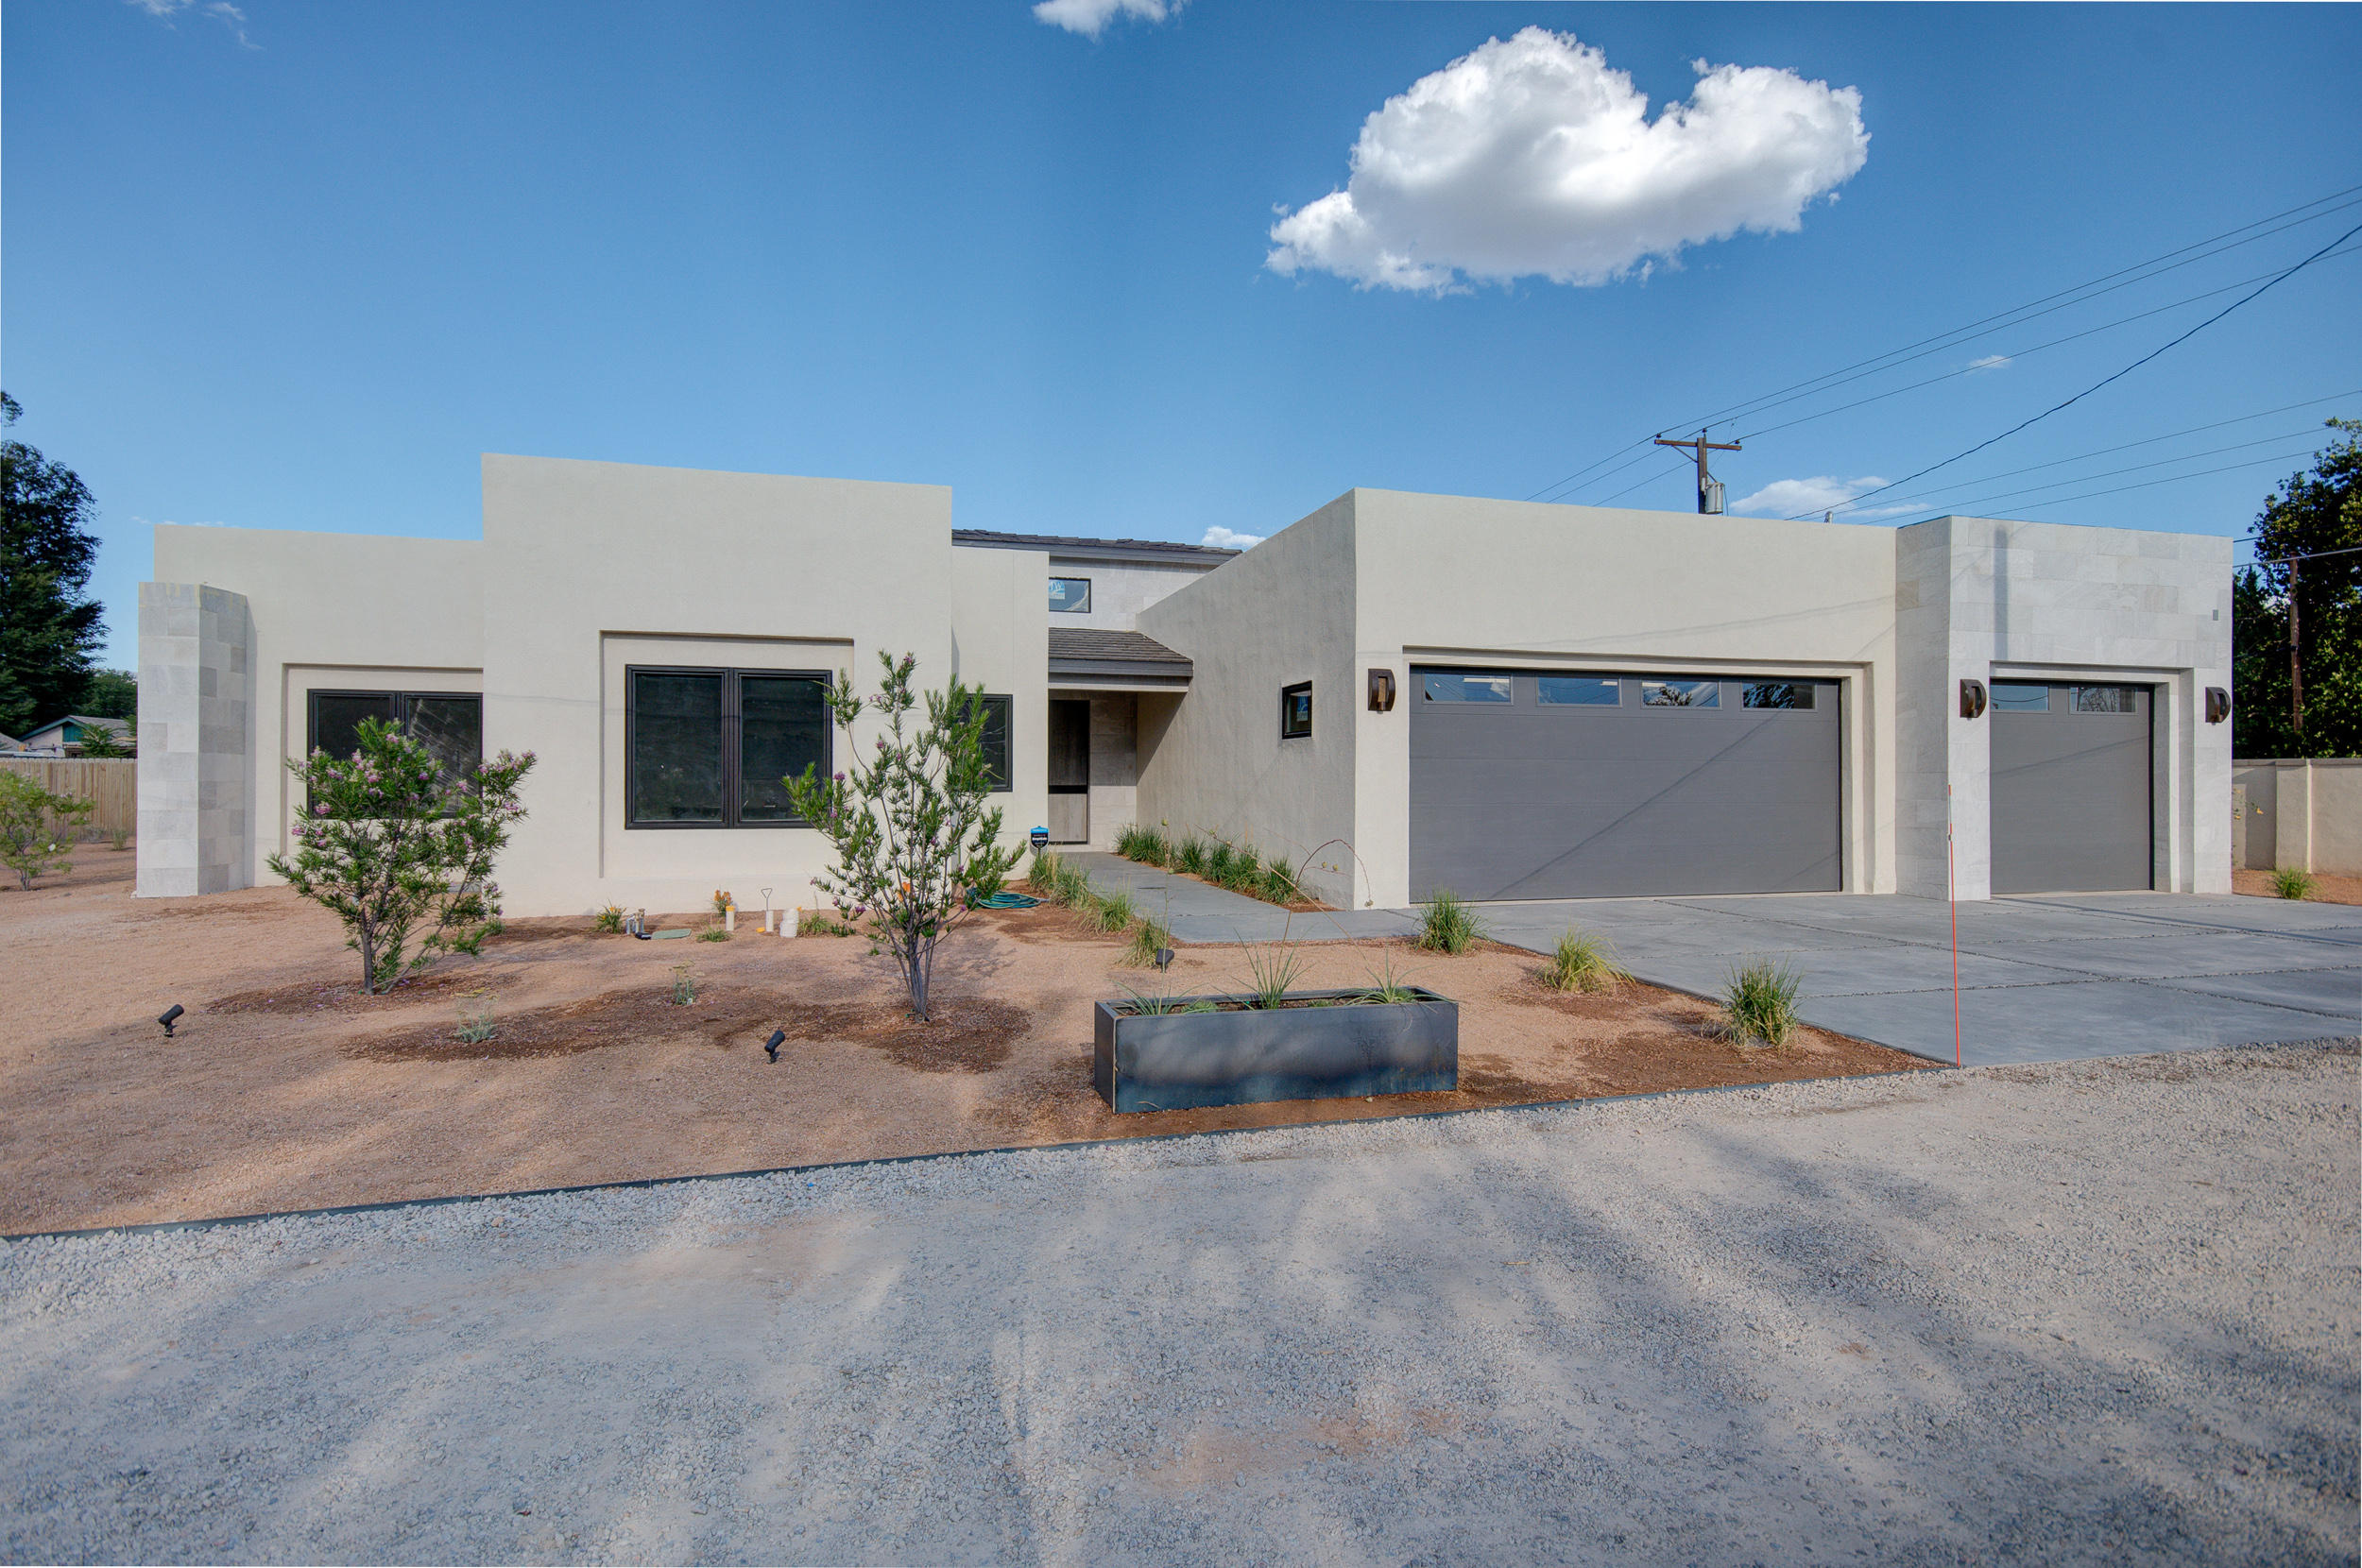 Welcome to your next forever home in the beautiful ABQ north valley!!! Mins from old town and Bosque! Care was put into this amazing custom home! Set on a private drive, this 4 bedroom property is perfect for your family and/or private business to have the room necessary to grow! Single story throughout, amazing master suite with an impressive separate shower, garden tub, connected front office with separate entrance,  closet, and bathroom access! Has an open floorplan perfect for entertaining from the kitchen to the living room! Separate formal dining area with serving counter space for large family gatherings! High ceilings allows to have the space and comfort that you're looking for in a custom home. Attention to detail on every corner of this amazing house! You don't want to miss!!